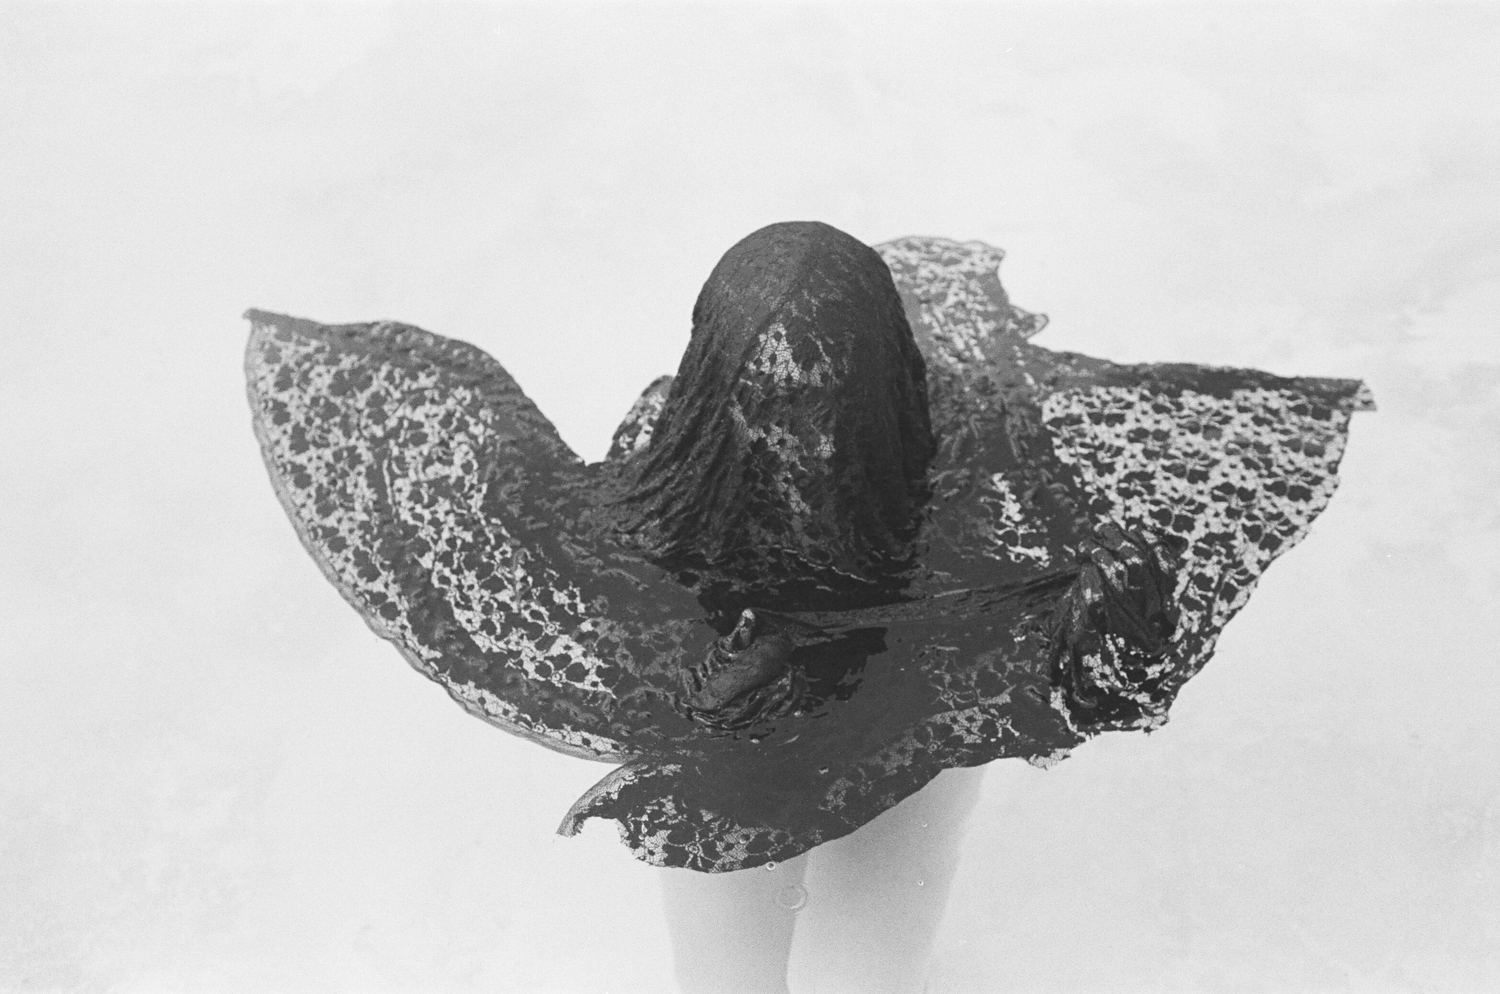 """""""Breaking Free"""" demonstrates young women coming out of their shells. They are freeing themselves from being trapped and becoming a better, more confident self. The fabric placed in all the photographs metaphorically stands as the women's shells. Each fabric resembles a different stage of freeing oneself. 